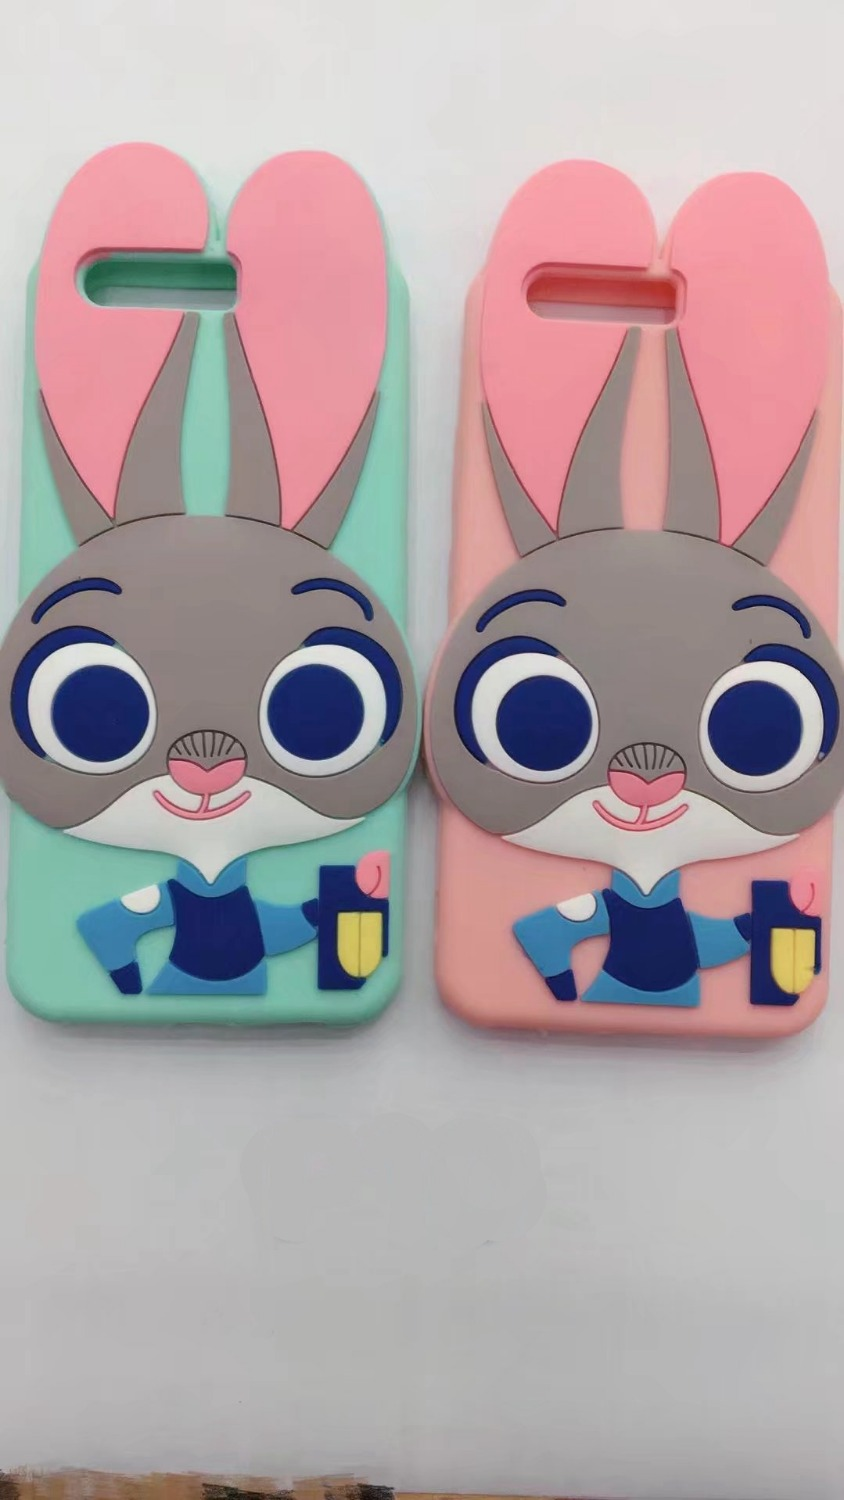 For Huawei P10 Case 3d Silicon Stitch Sulley Judy Rabbit Cartoon Silikon Xiaomiredmi3s Soft Phone Back Skin Cover Lite Plus In Pouch From